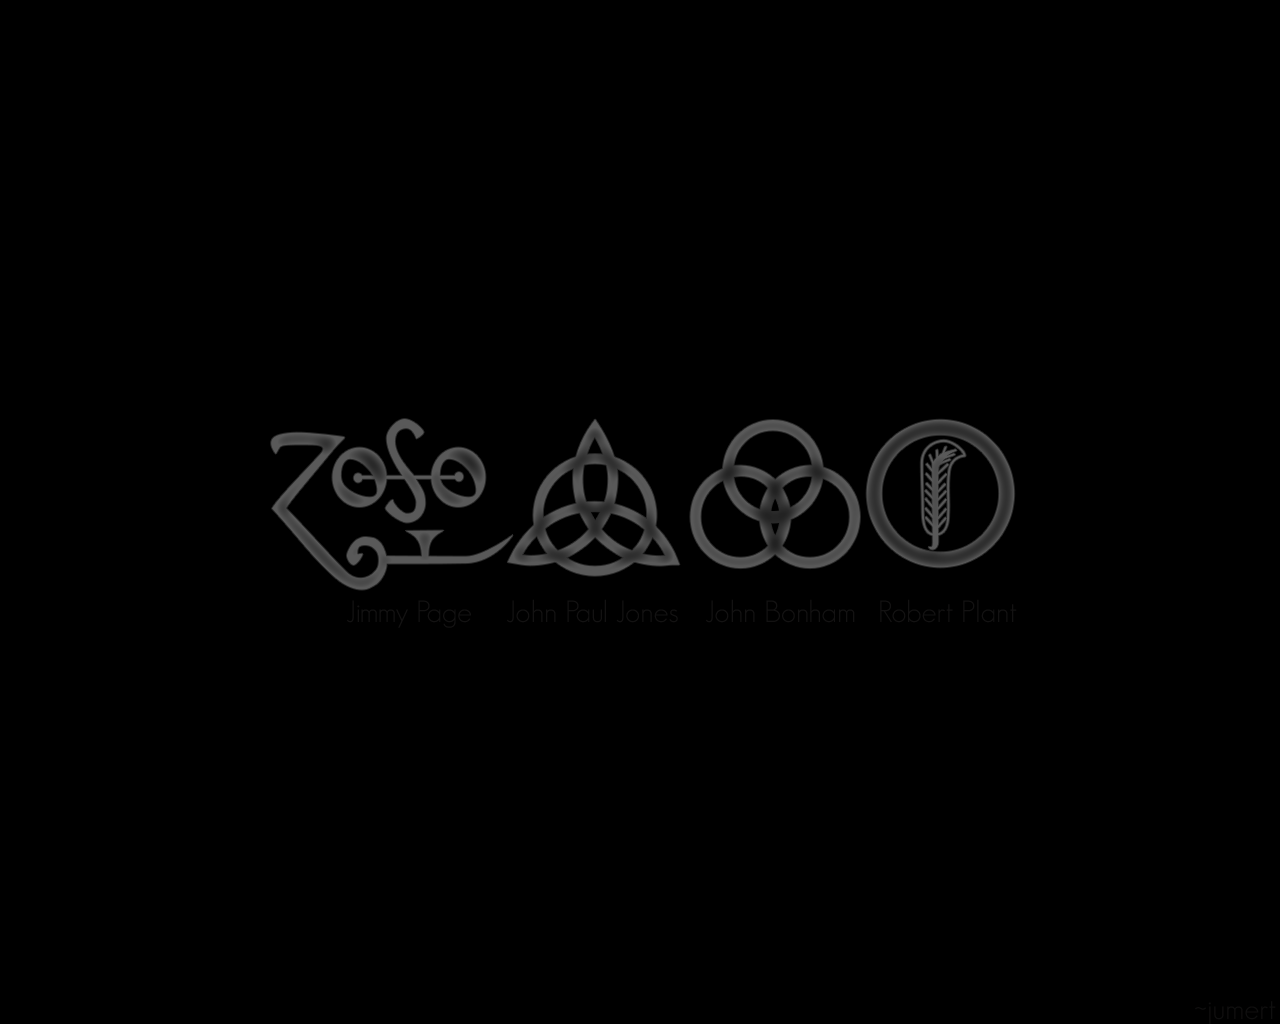 Trinity Symbol Wallpaper Led Zeppelin Used This Symbol